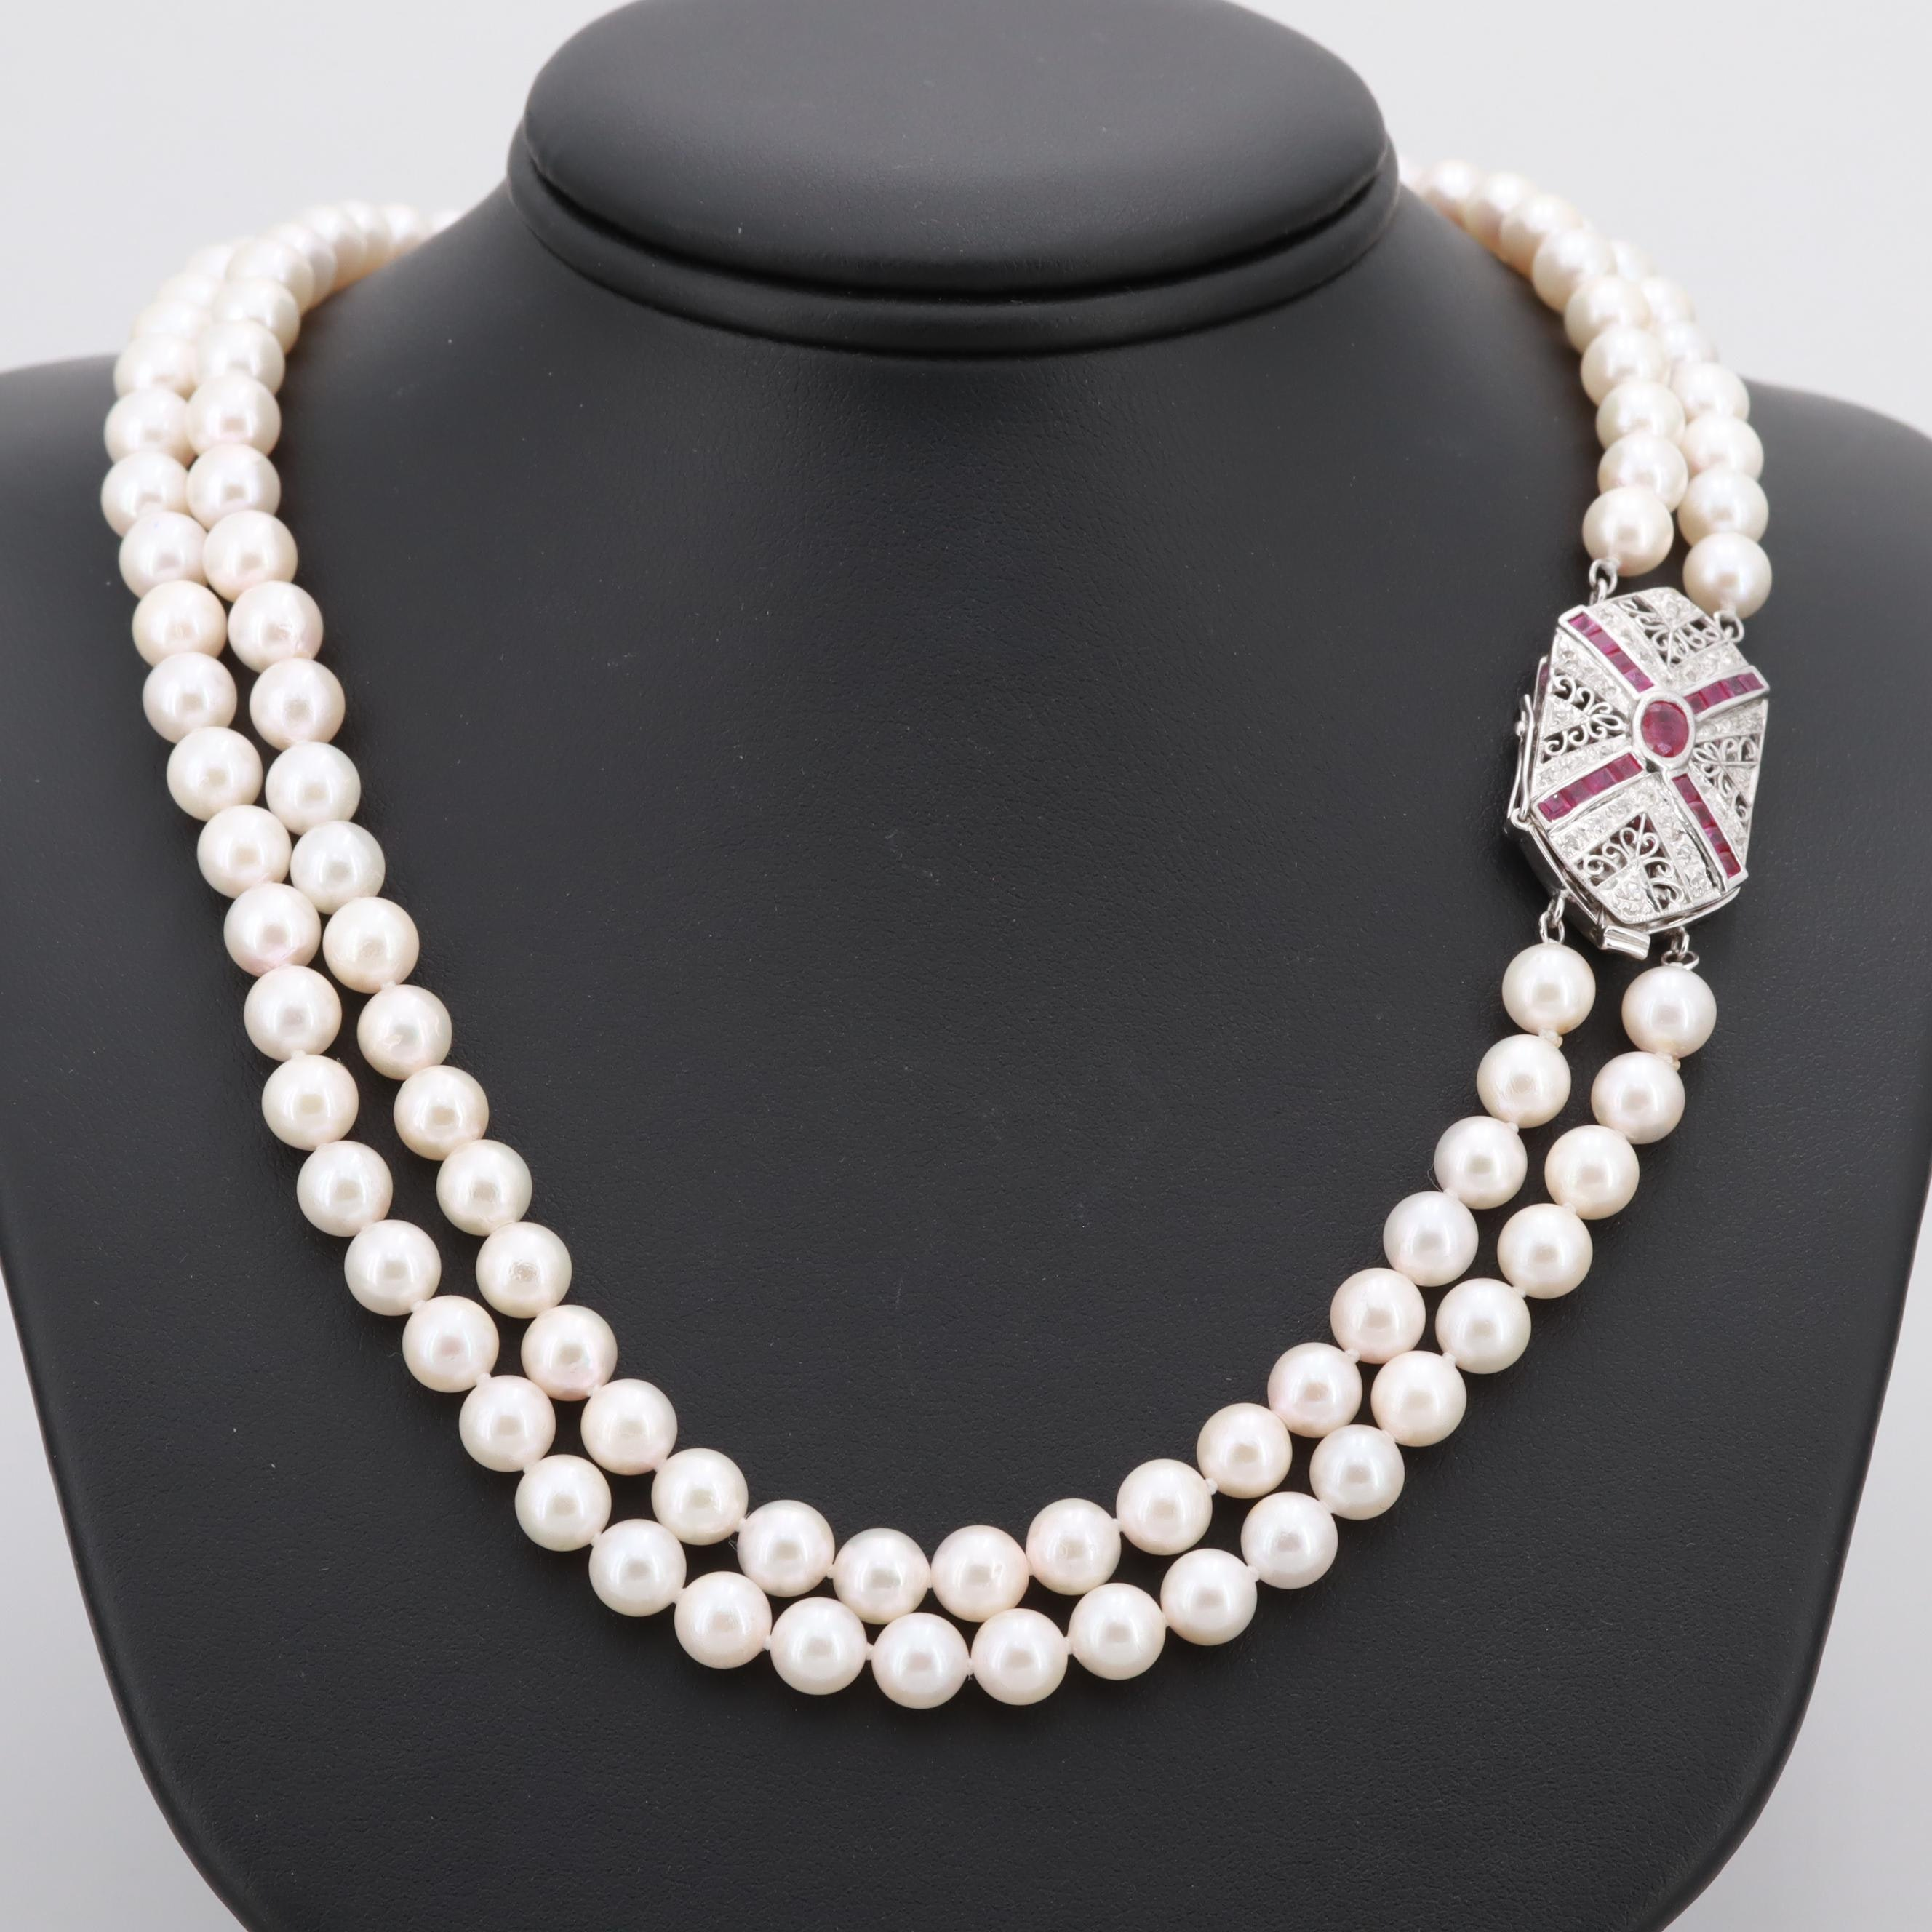 14K White Gold Cultured Pearl, Ruby and Diamond Necklace